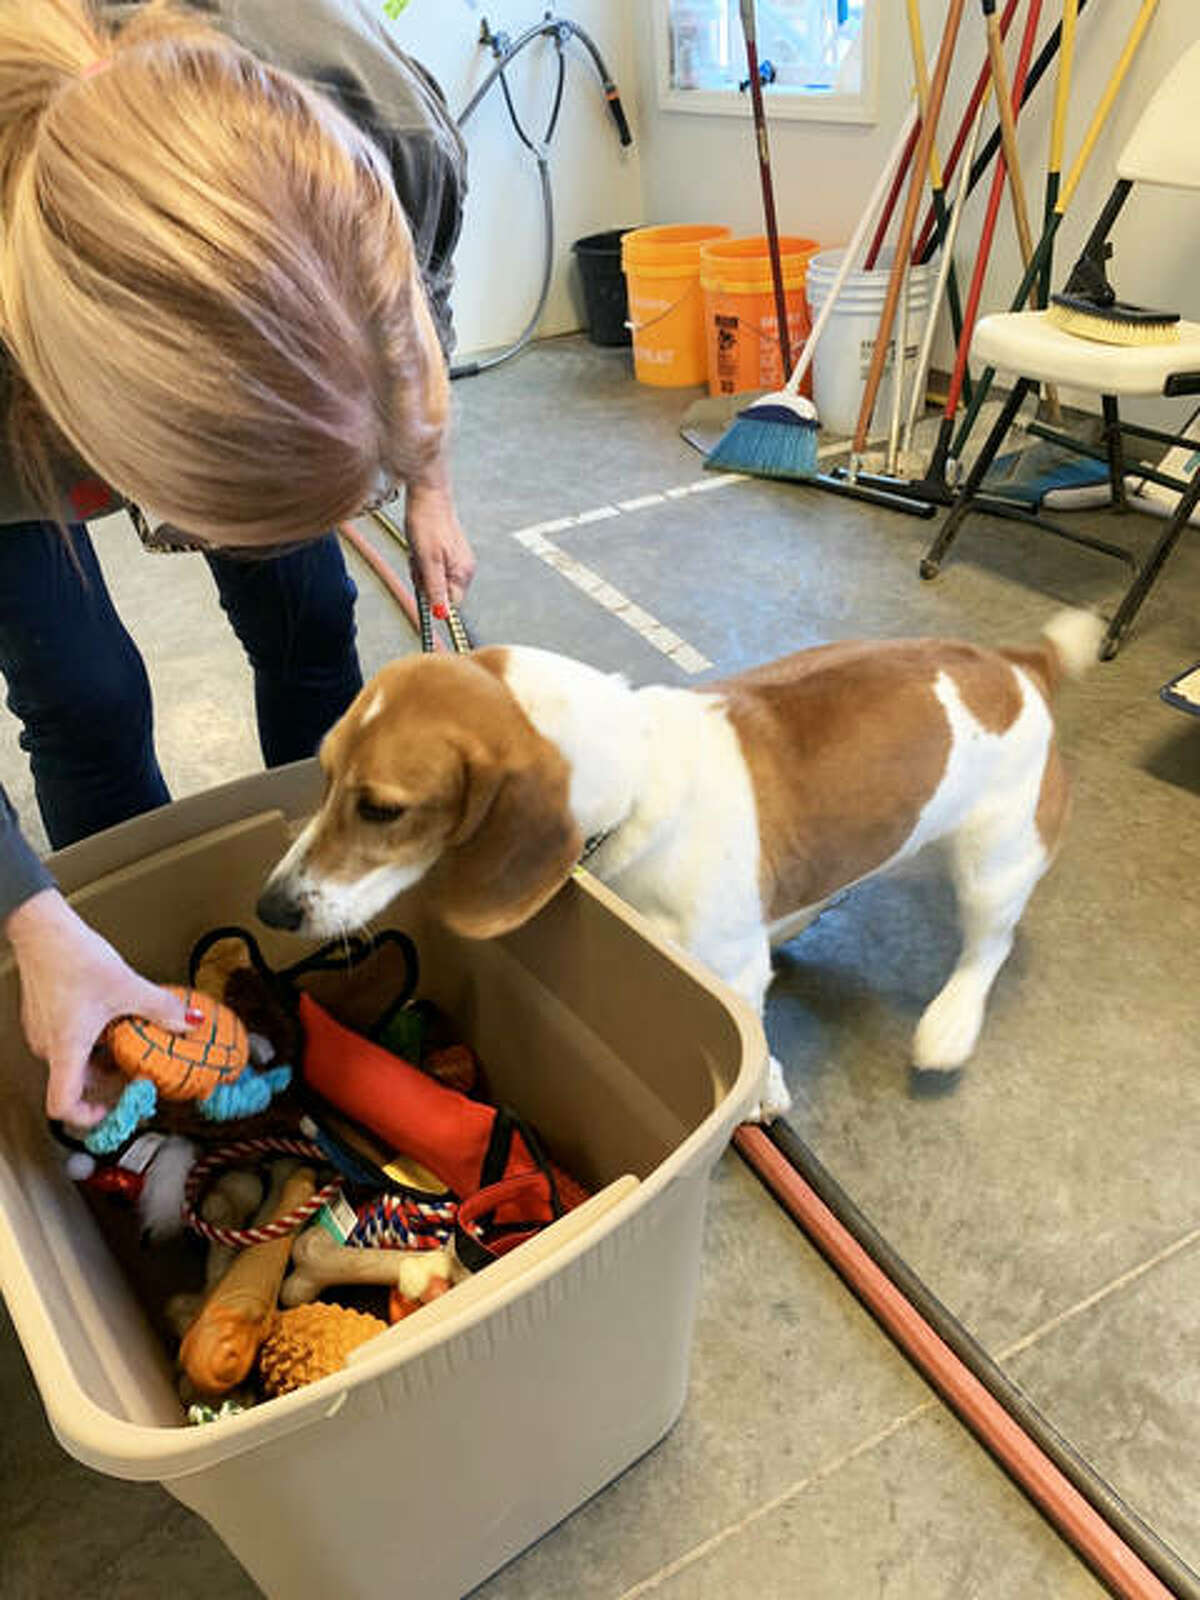 The dogs at Hope Animal Rescues in Godfrey on Christmas Day received special gifts and a holiday feast, thanks to group's volunteers. The animals had a turkey dinner with all the trimmings, cooked by volunteers, and every dog got a homemade treat.